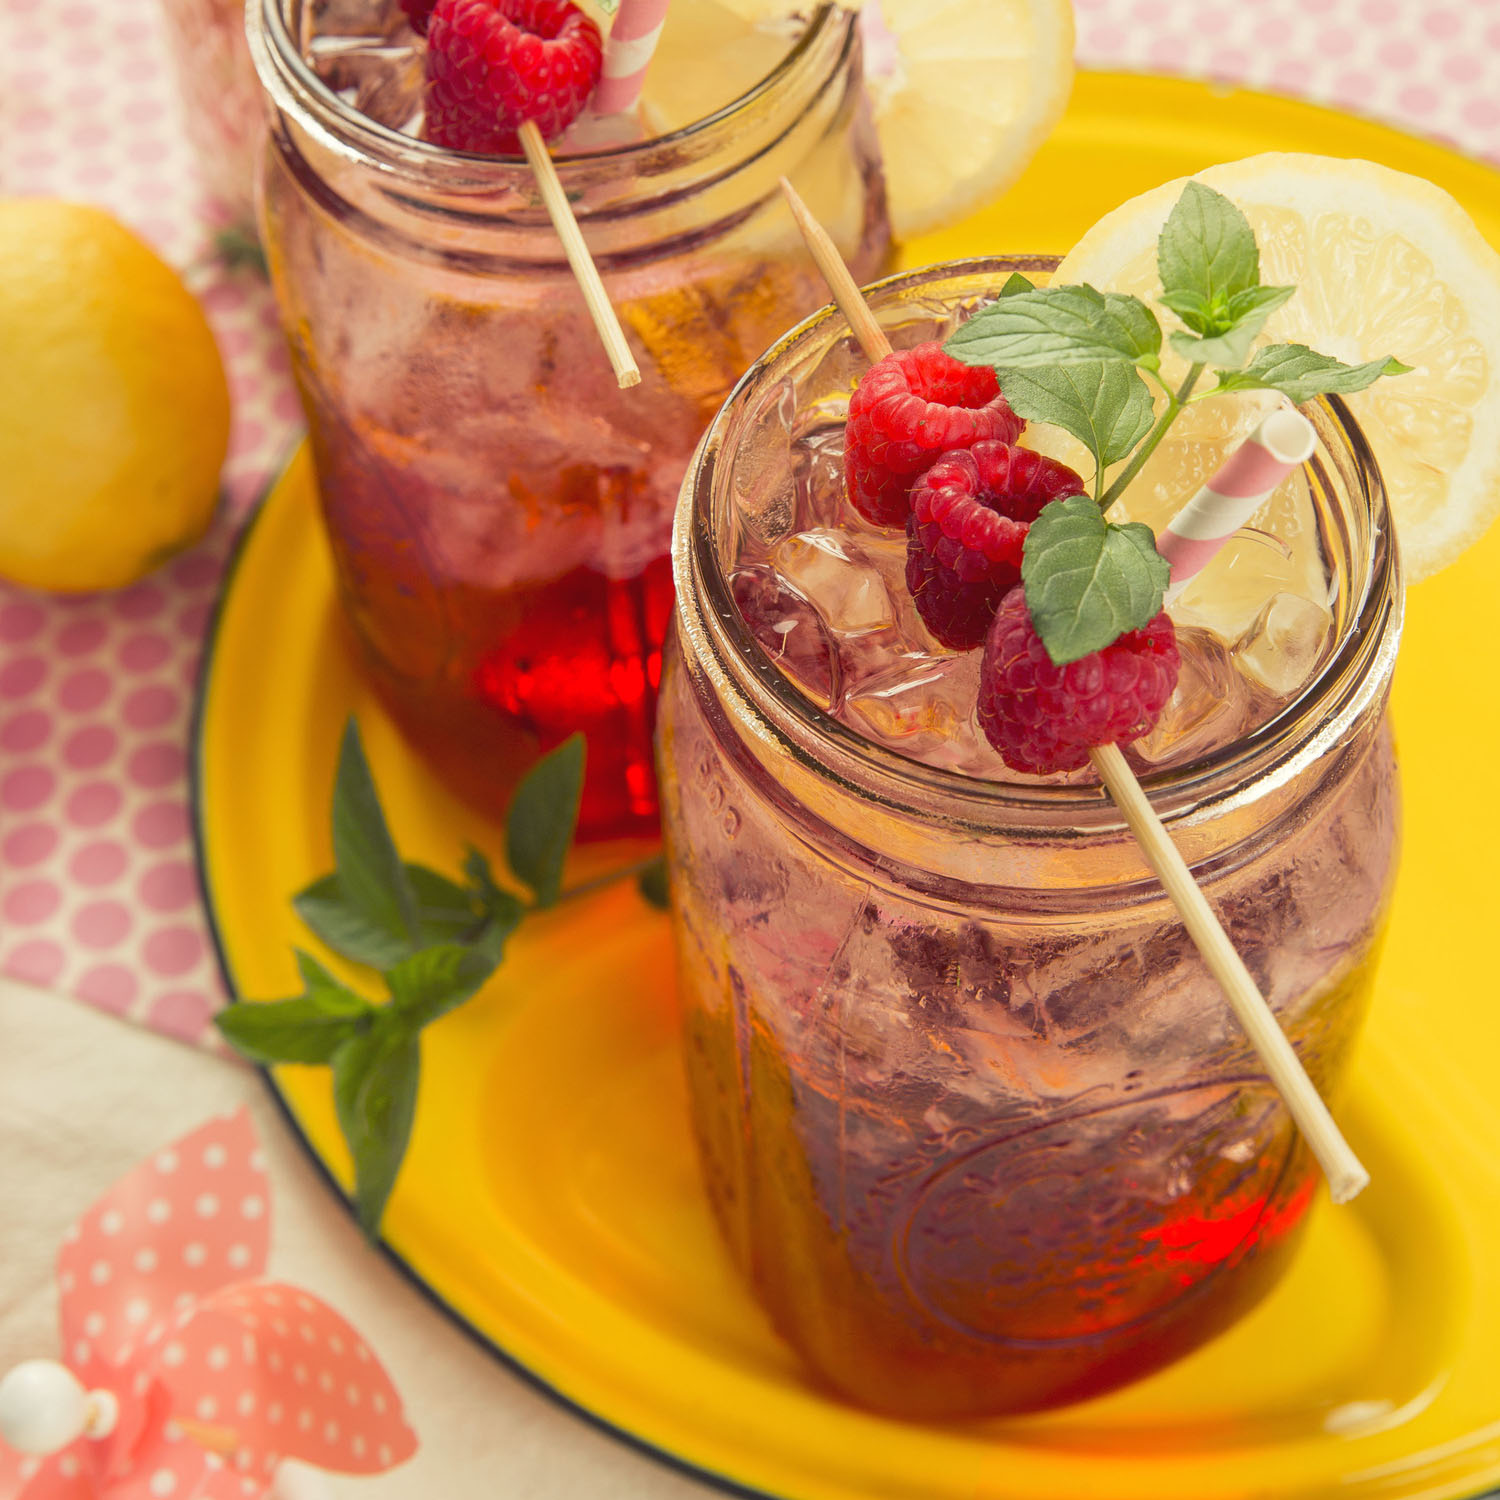 Raspberry Mint Spritzer With Lemon   Jul 28, 2015